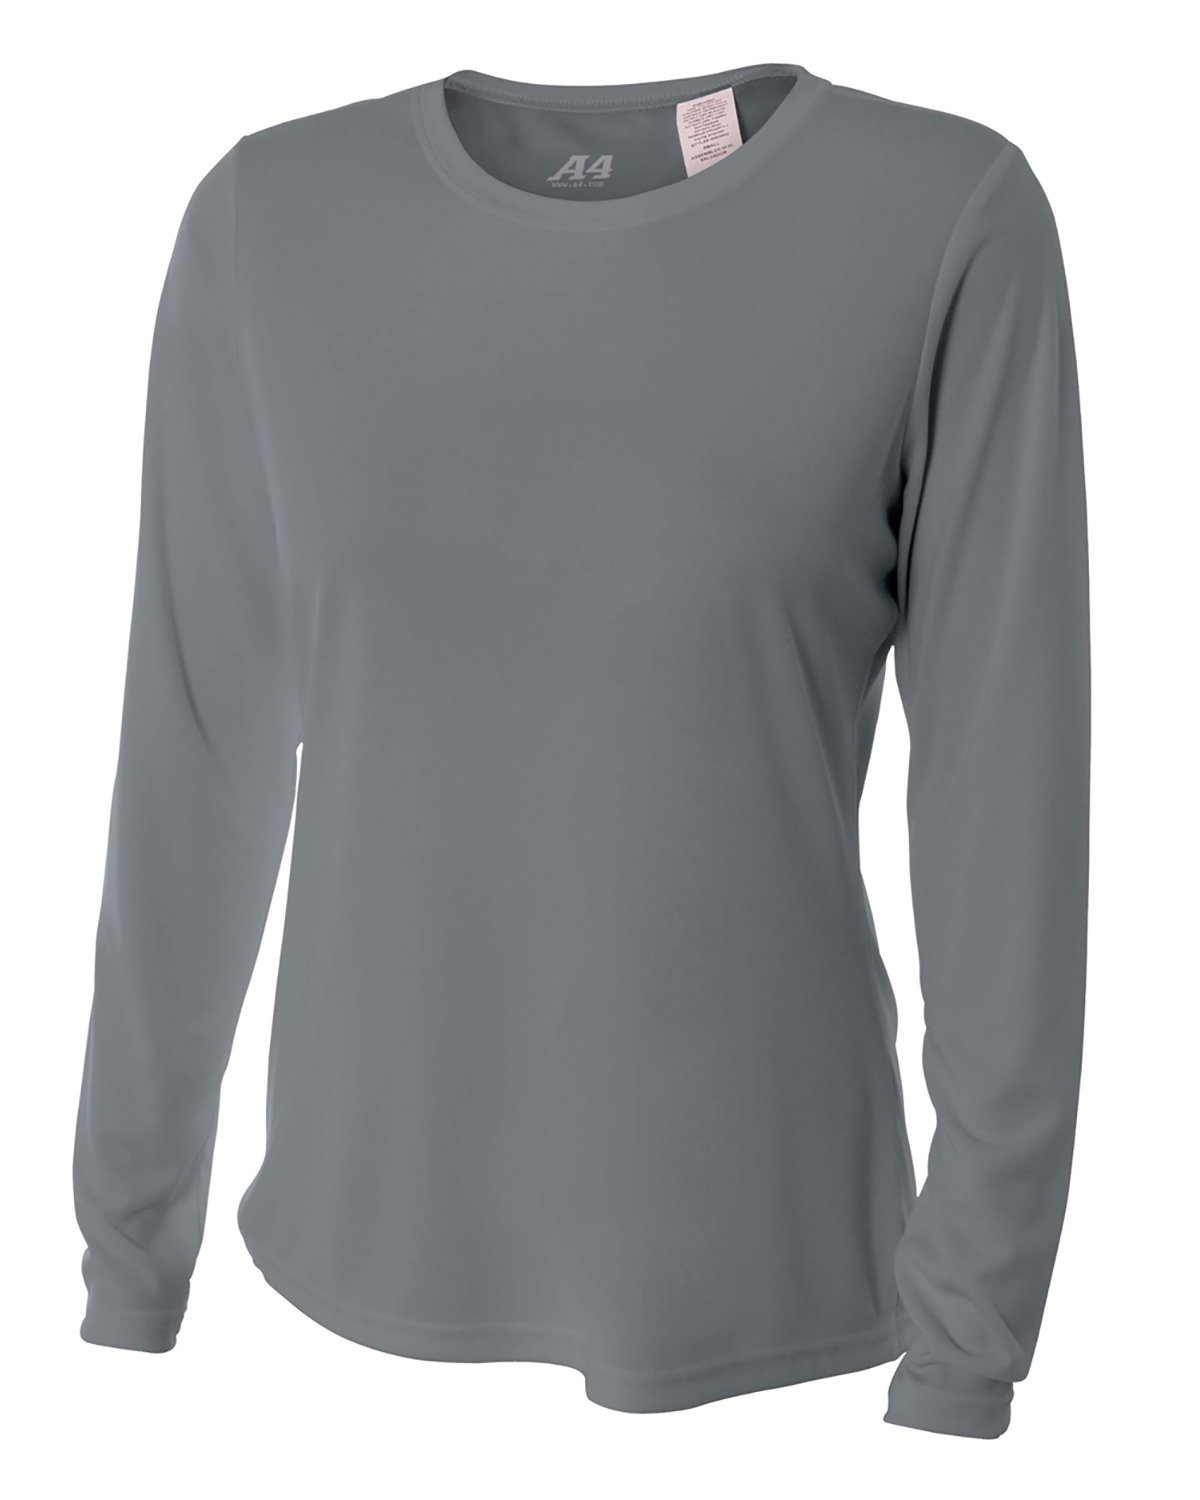 A4 Ladies' Long Sleeve Cooling Performance Crew Shirt GRAPHITE